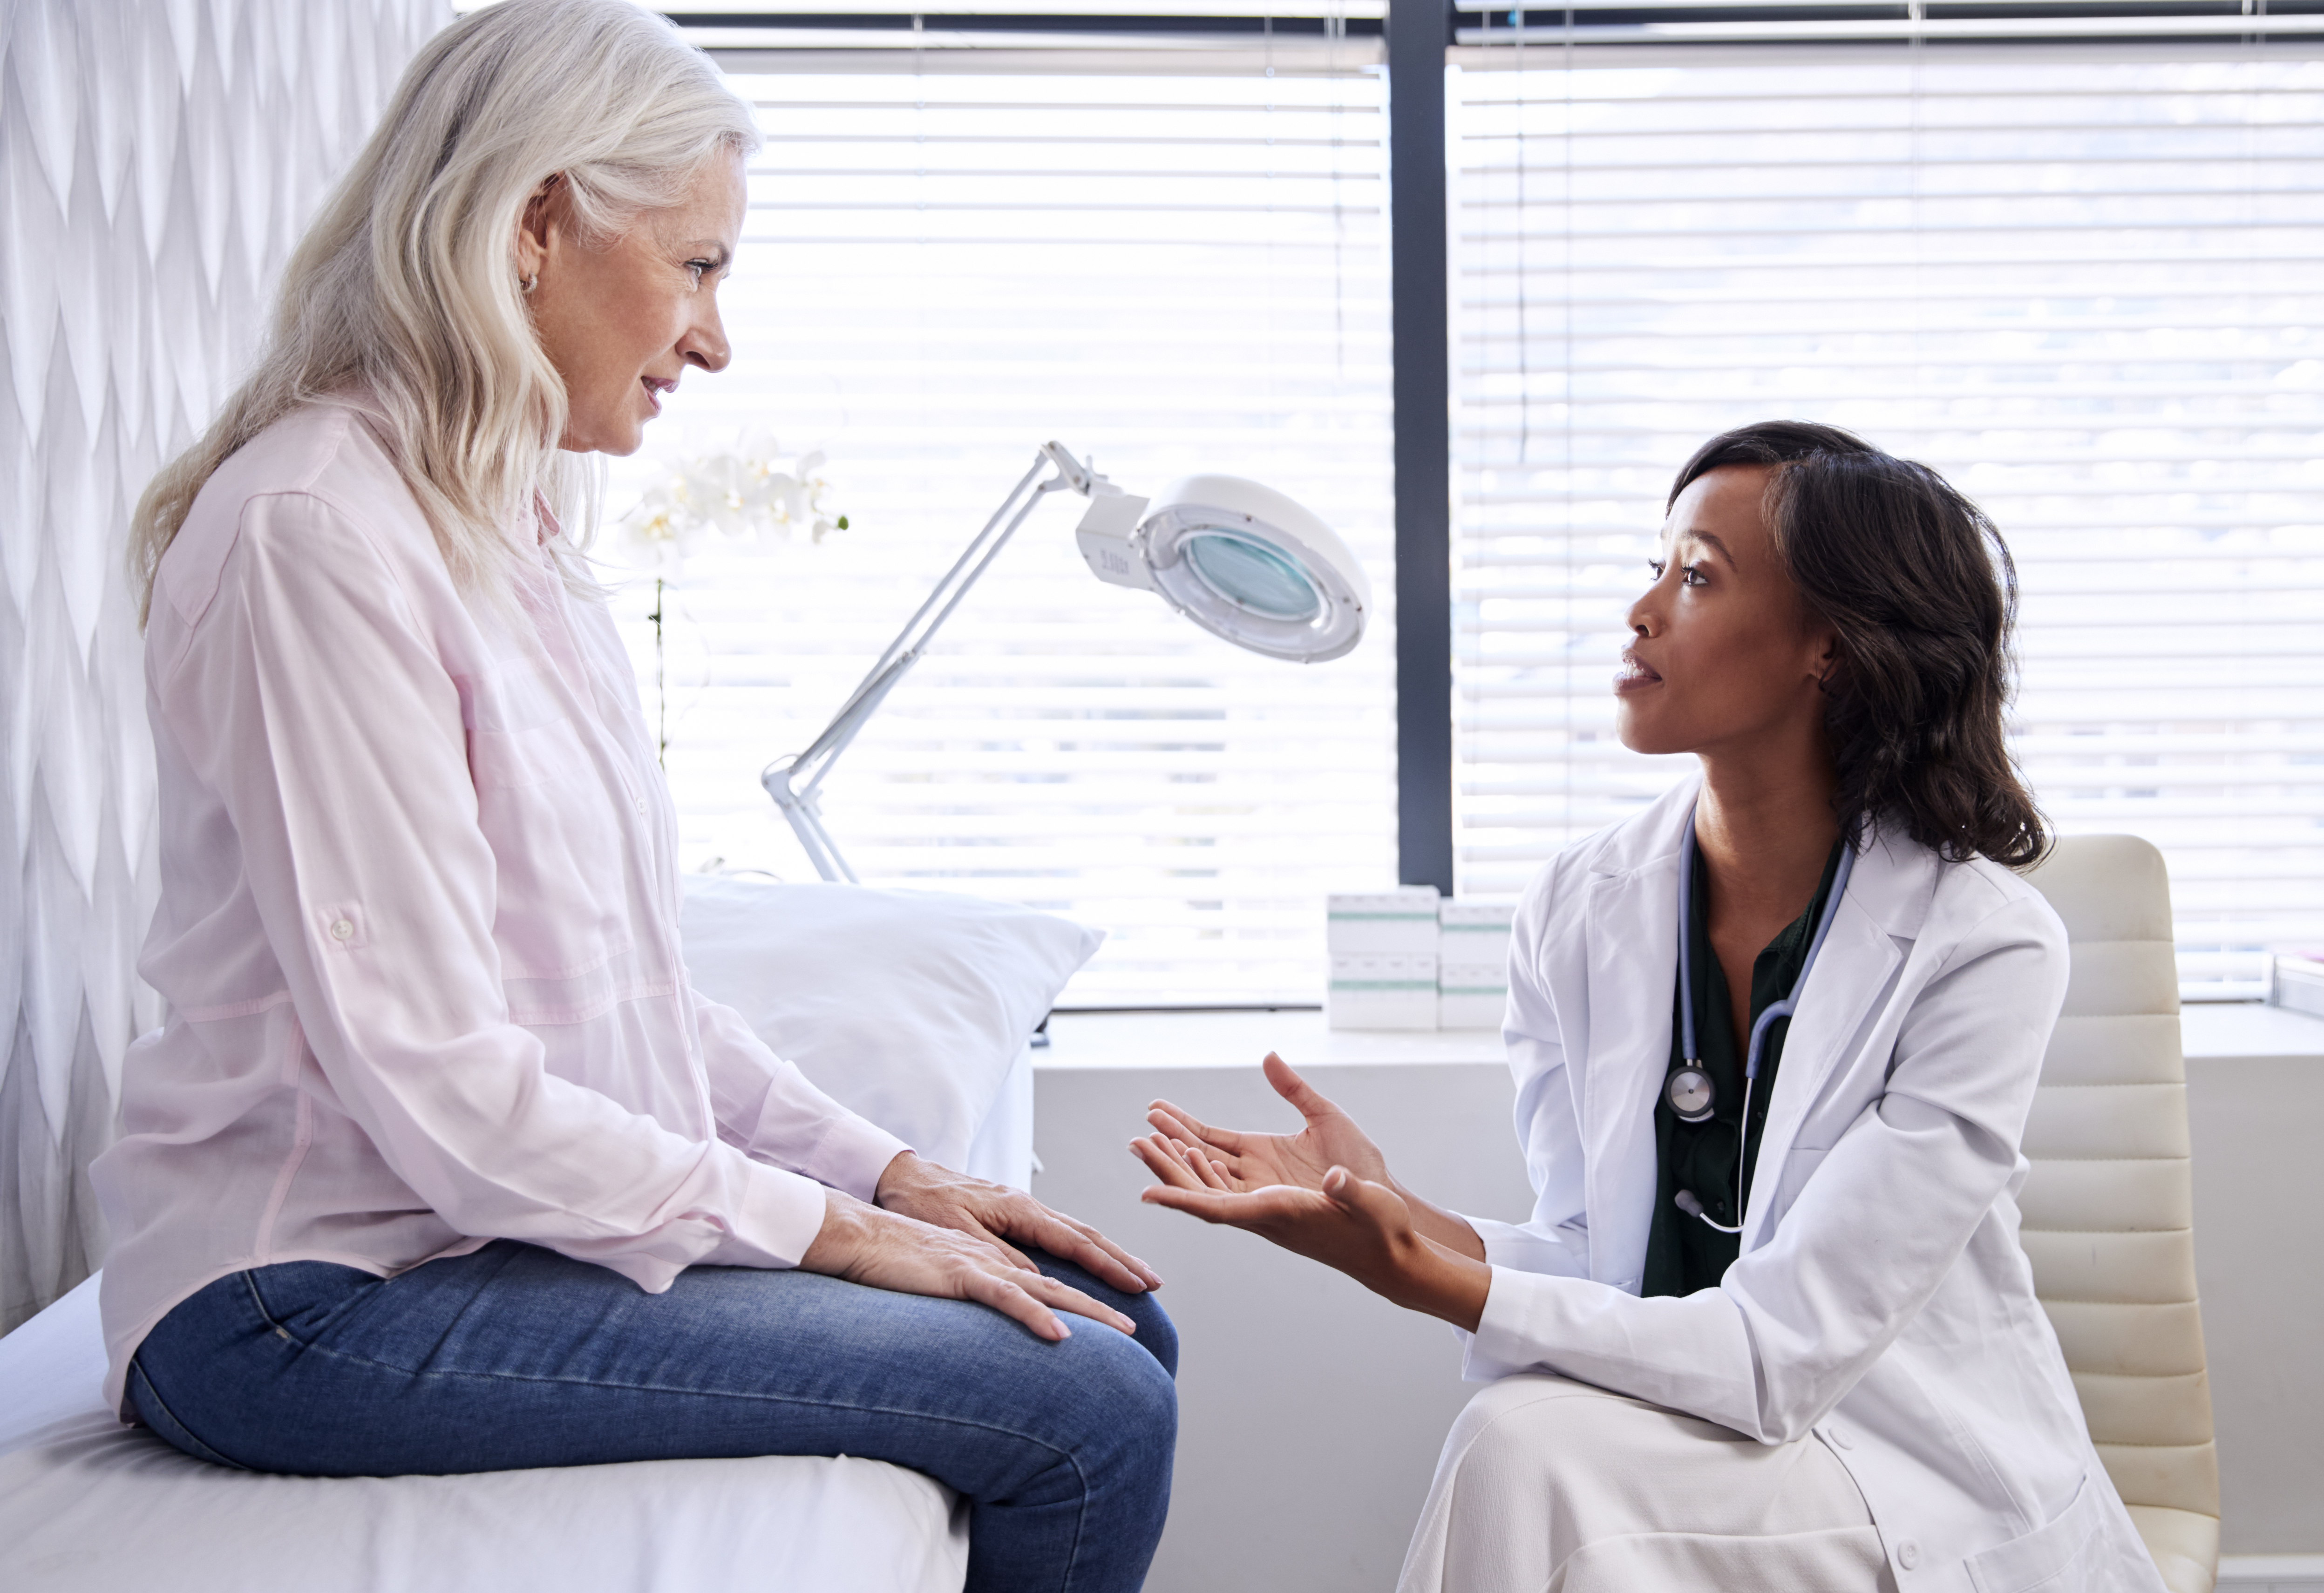 An older woman on a patient table talking with a doctor